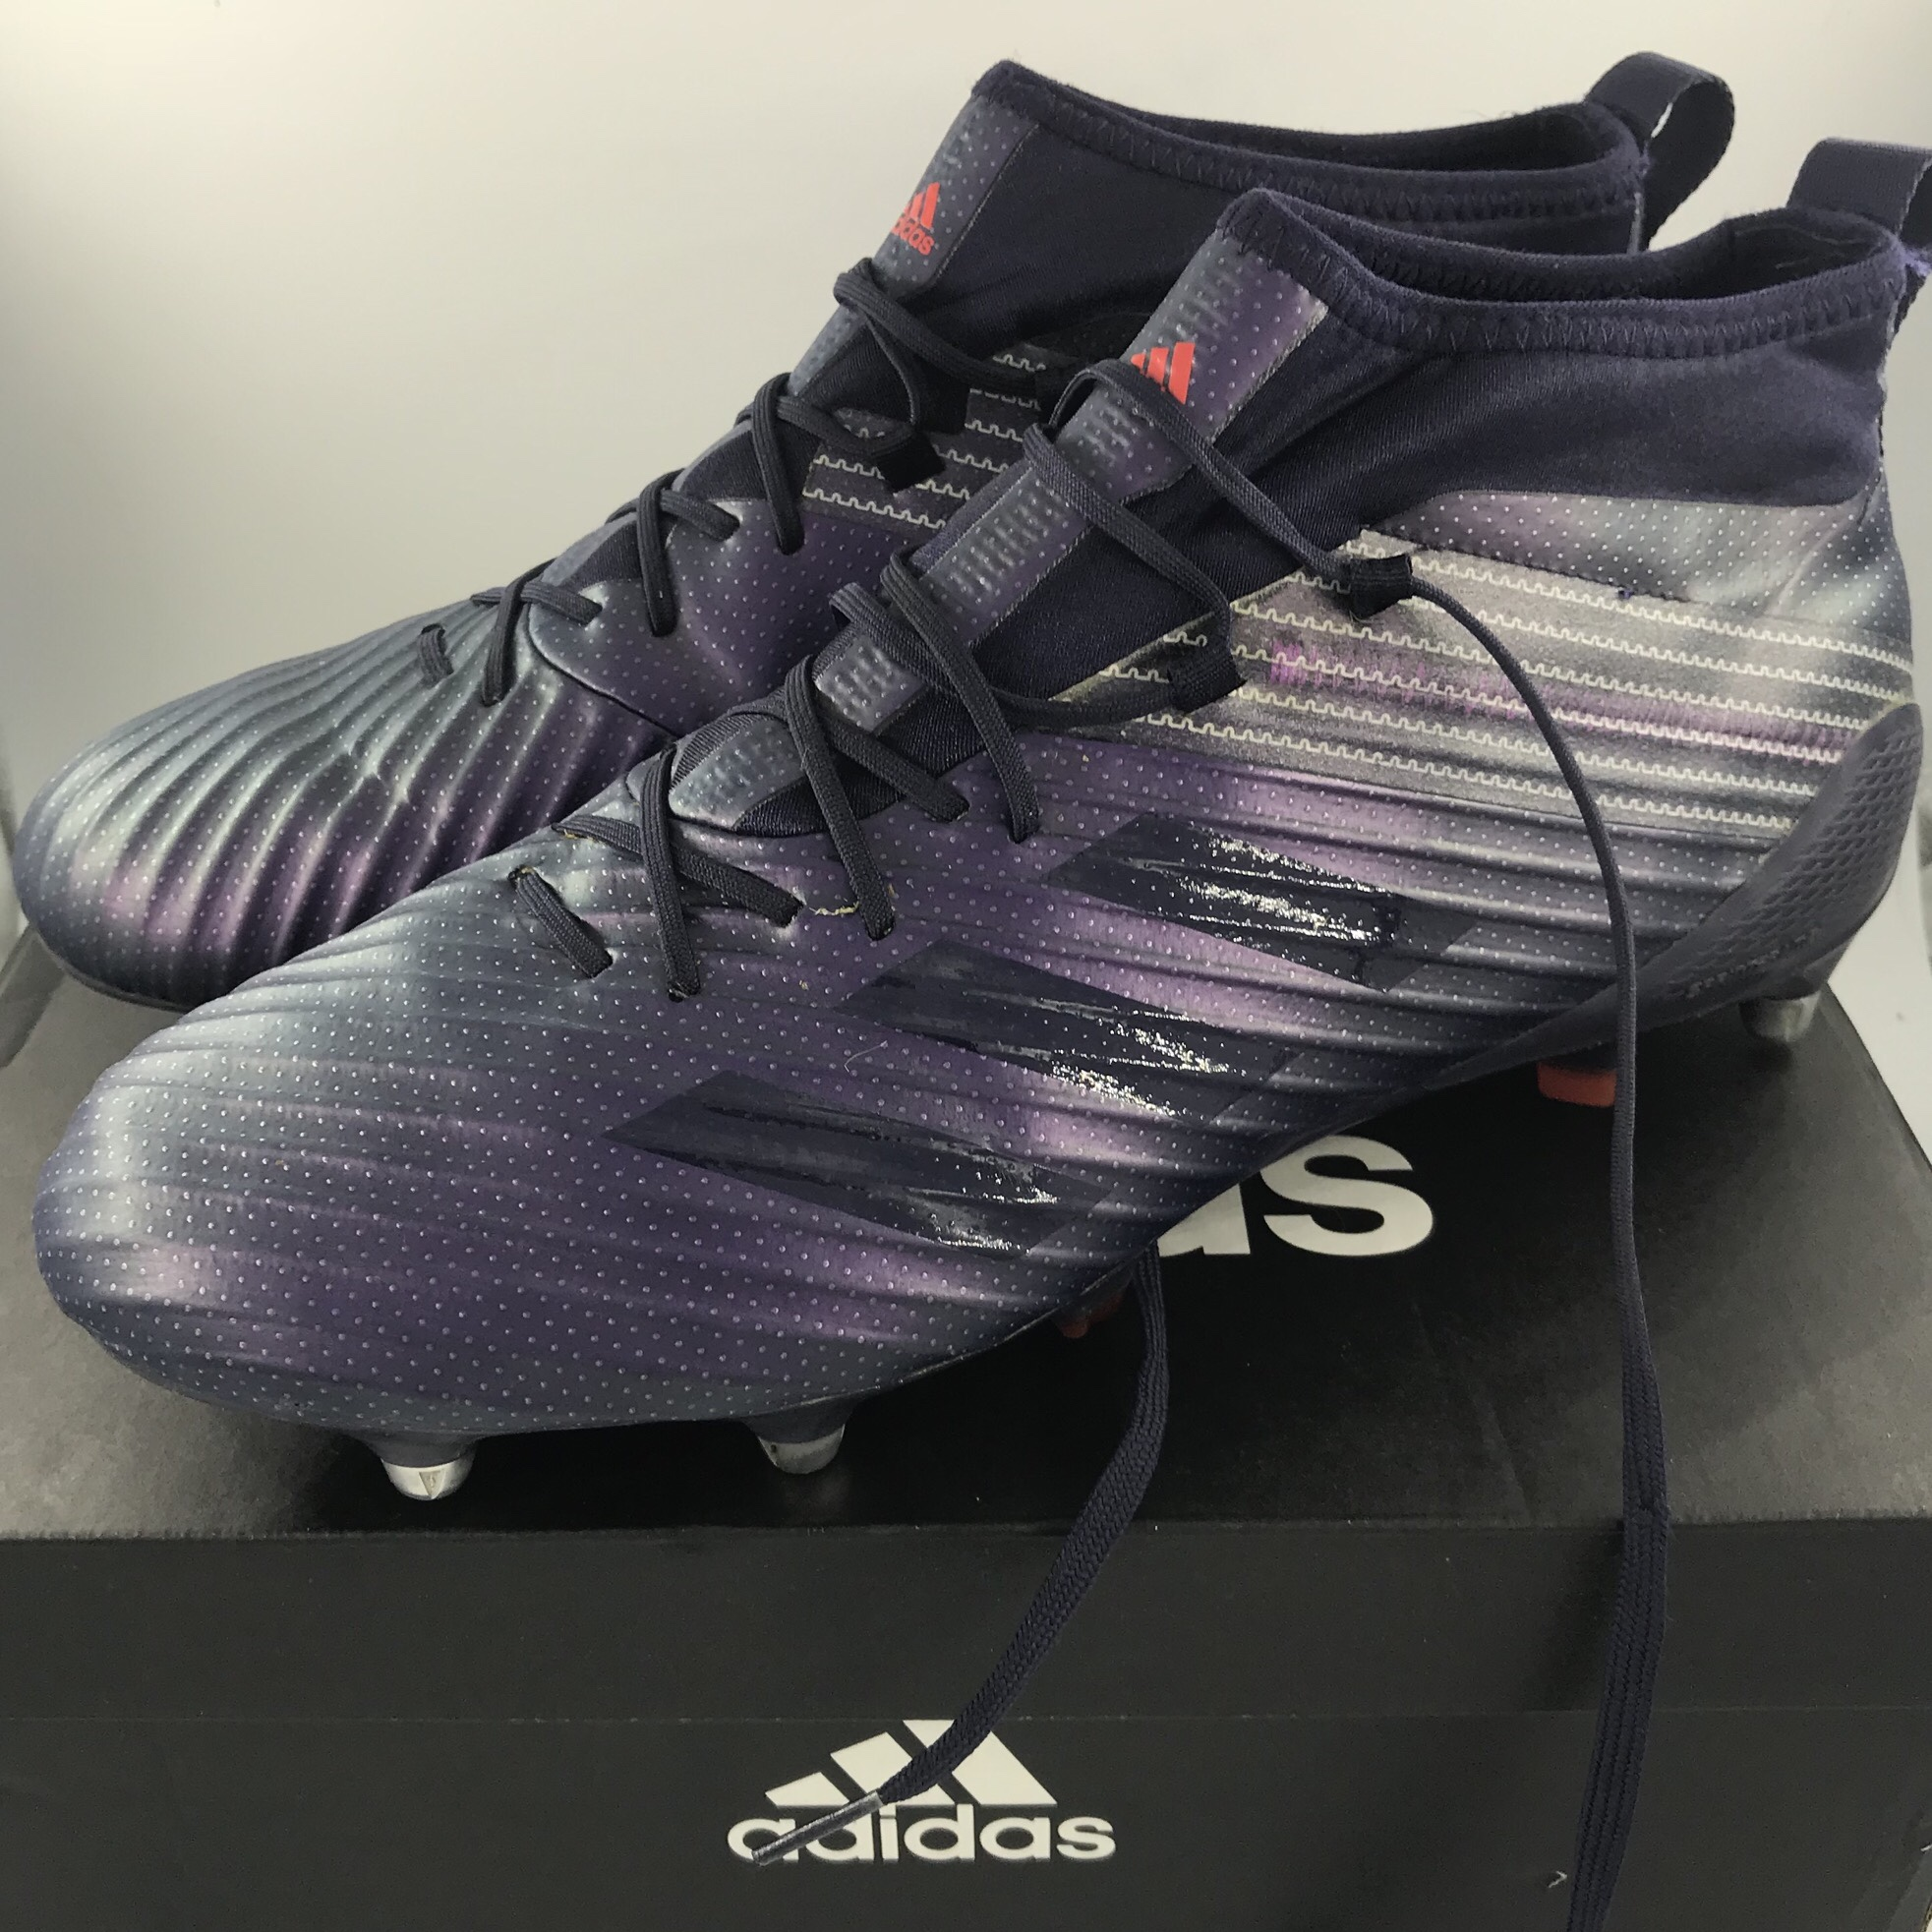 Adidas Predator Flare SG Rugby Boots Size UK~10.5 Depop